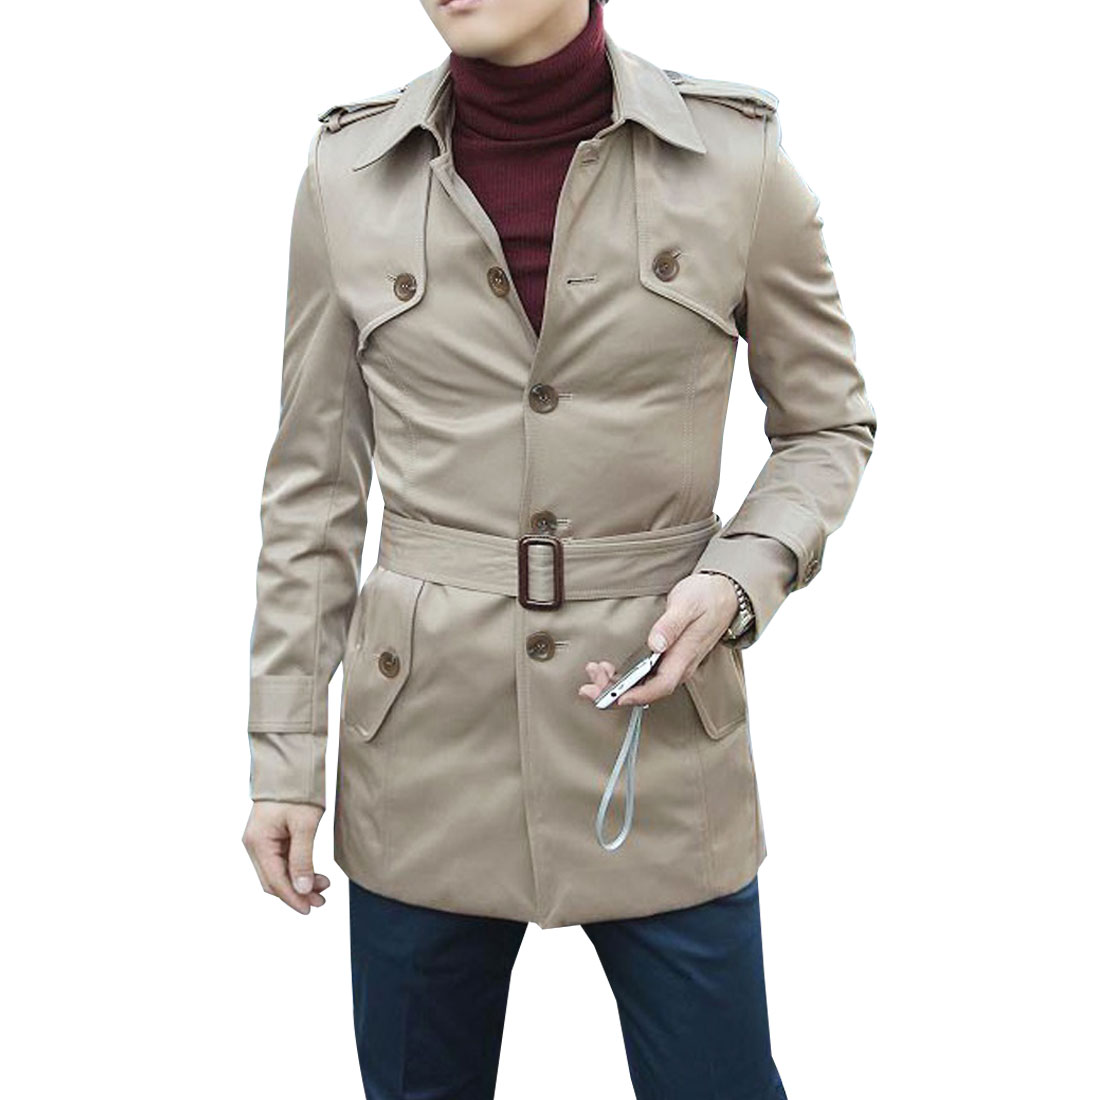 Men Khaki Color Fashion Adjustable Waist Strap Buttons Decor Pockets Jacket S